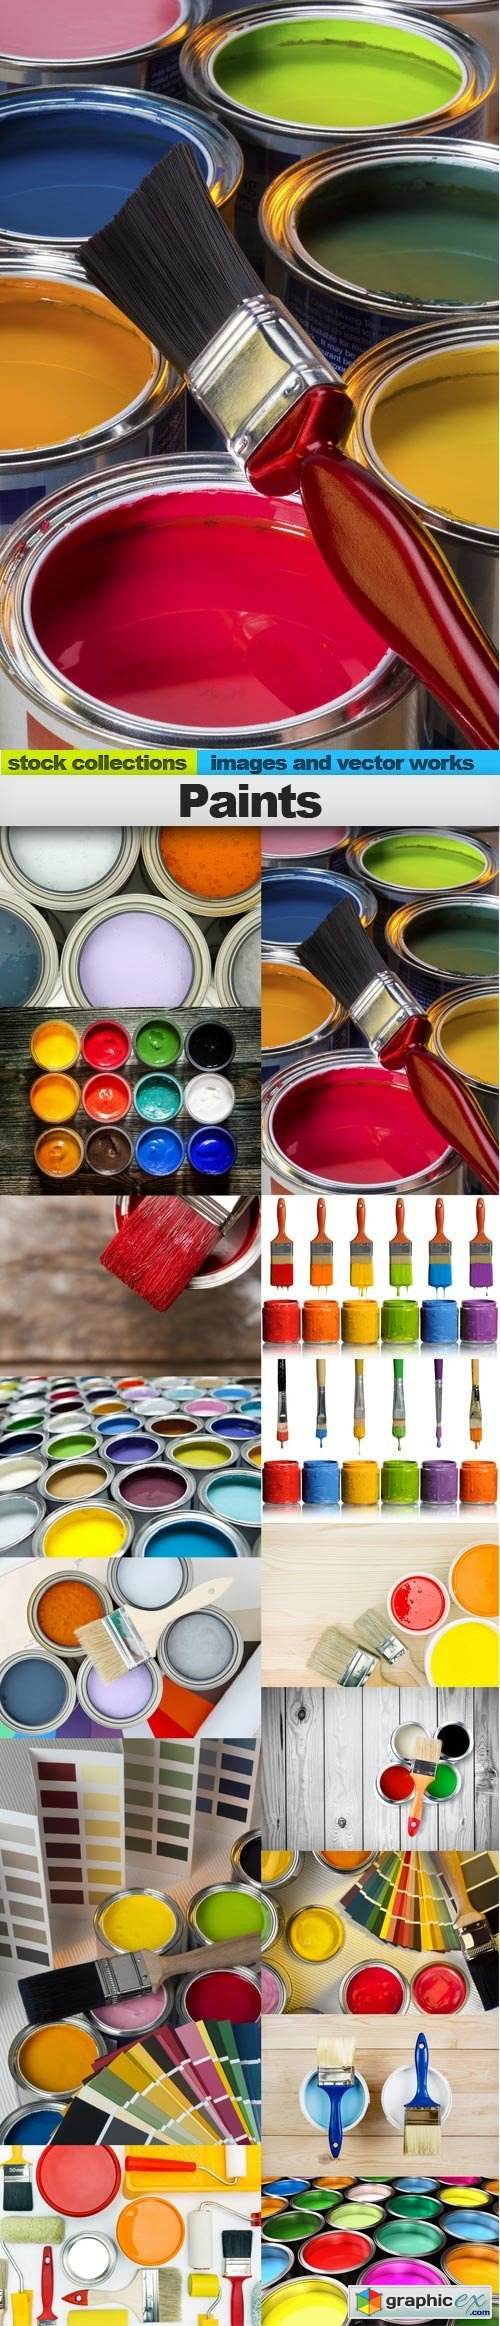 Paints, 15 x UHQ JPEG